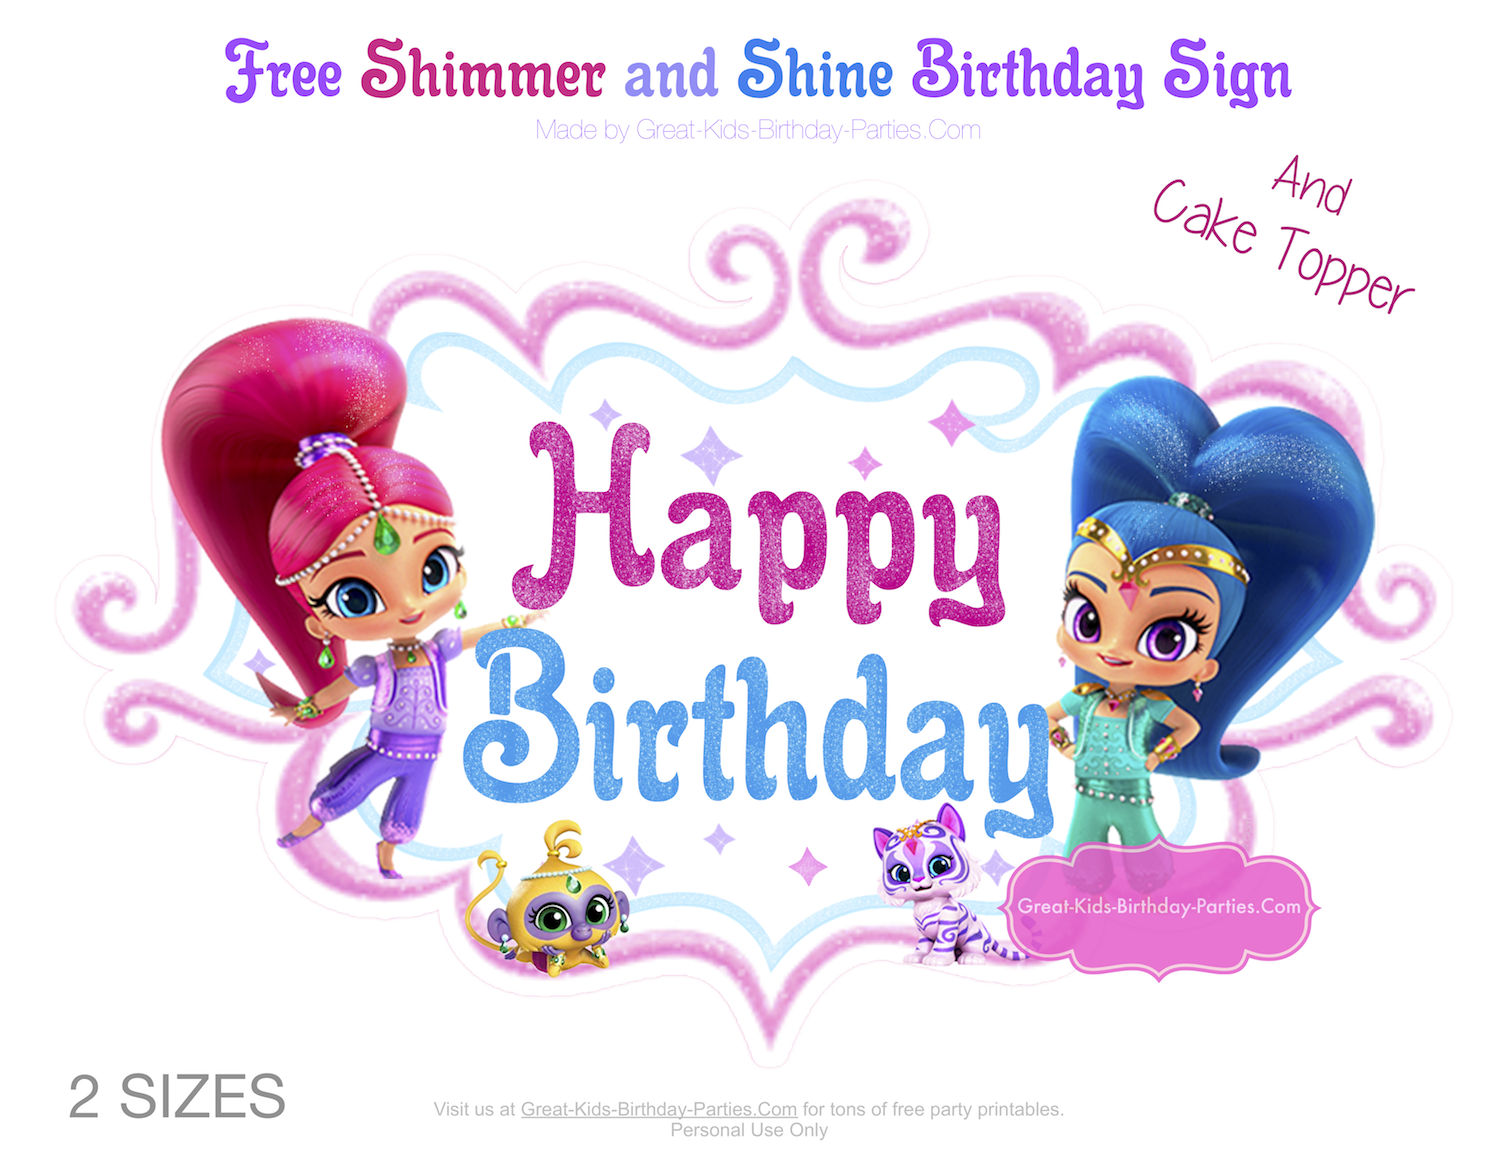 and shine birthday party start with our free birthday sign and cake topper to plan your glitter tactic birthday bash download both shimmer and shine